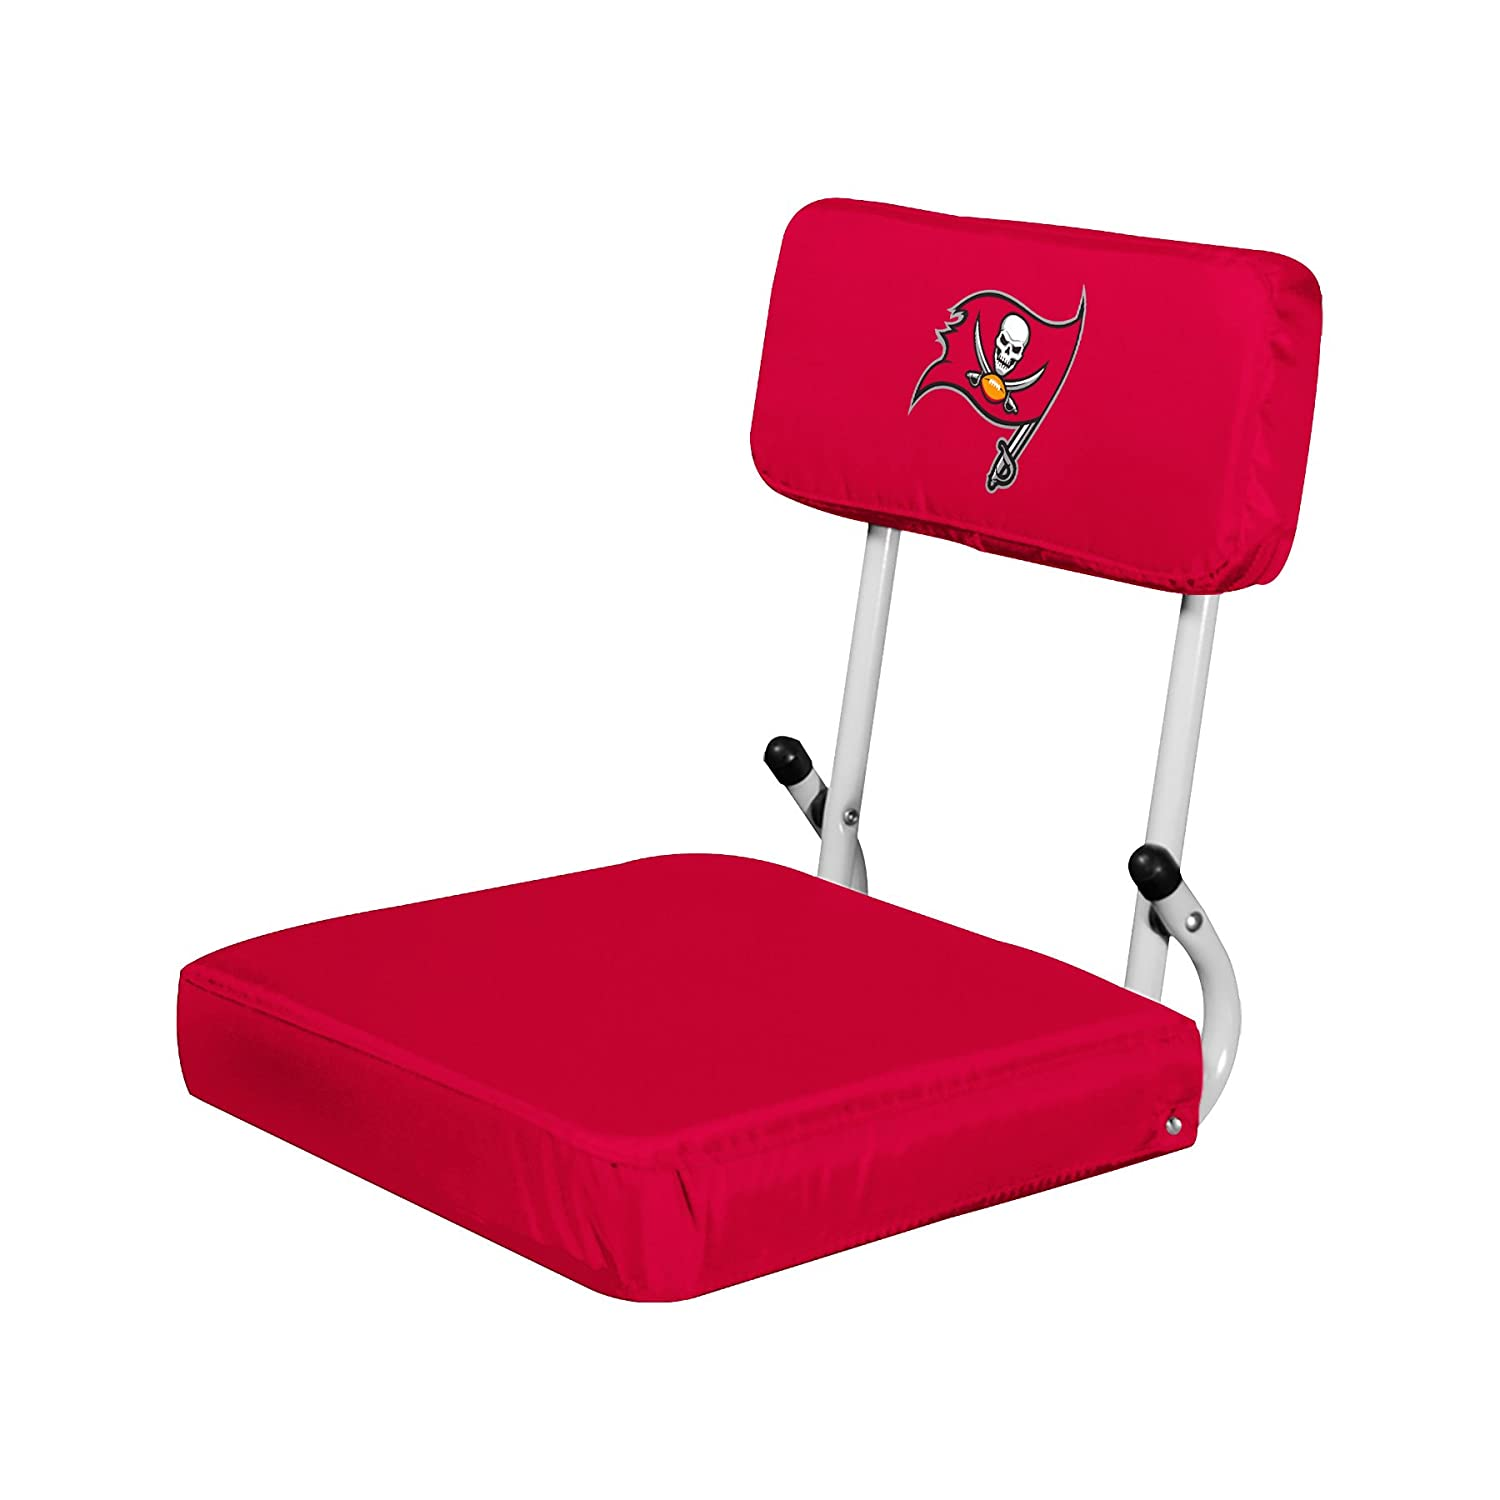 (Tampa Bay Buccaneers, One Size) - NFL Collapsible Hardback Portable Seat with Metal Bleacher Attachment   B06W53C7RS